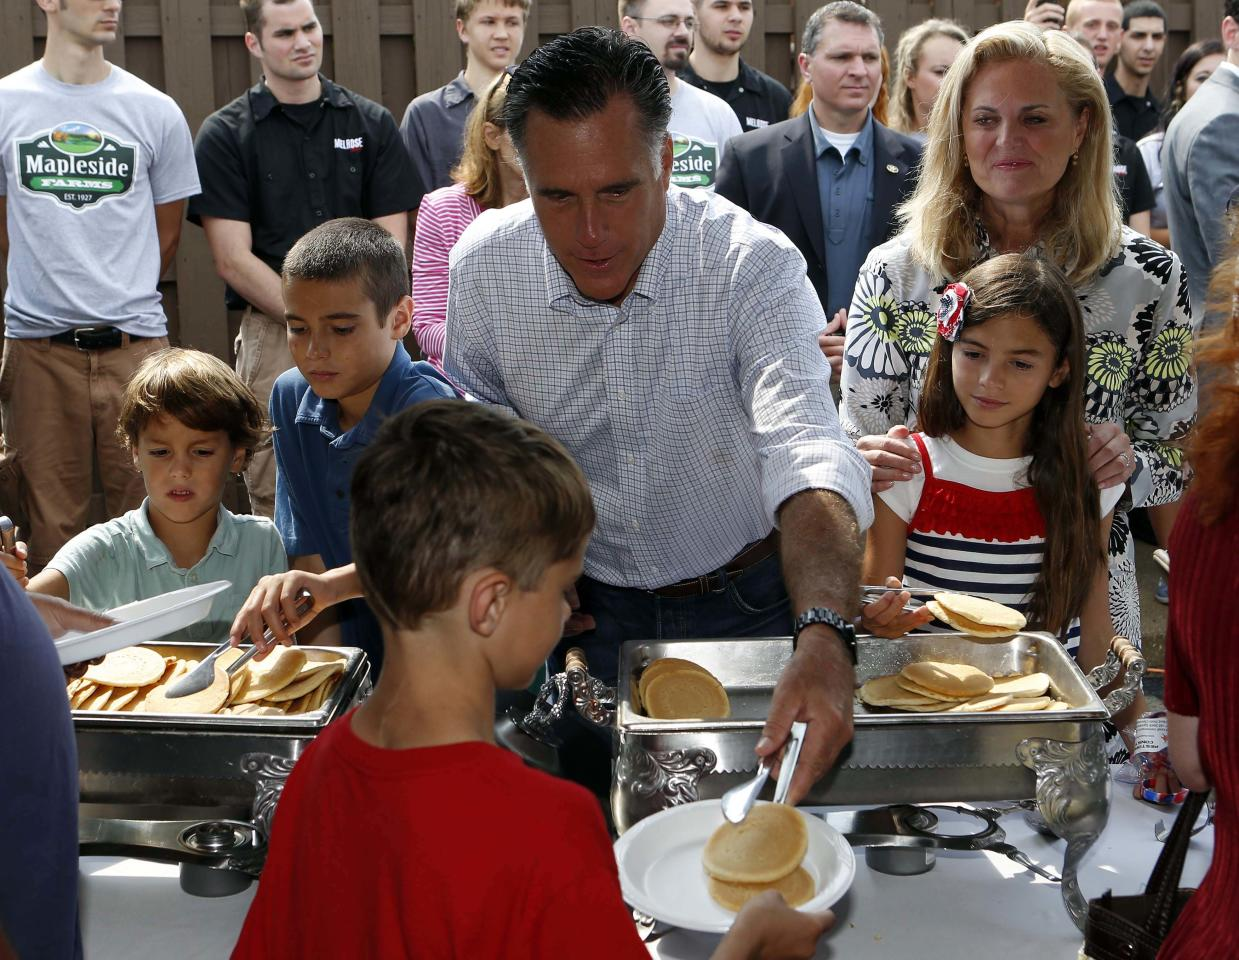 U.S. Republican Presidential candidate Mitt Romney, his wife Ann, and his grandchildren, serve pancakes while attending a pancake breakfast at Mapleside Farms in Brunswick, Ohio, June 17, 2012.     REUTERS/Larry Downing    (UNITED STATES - Tags: POLITICS ELECTIONS)